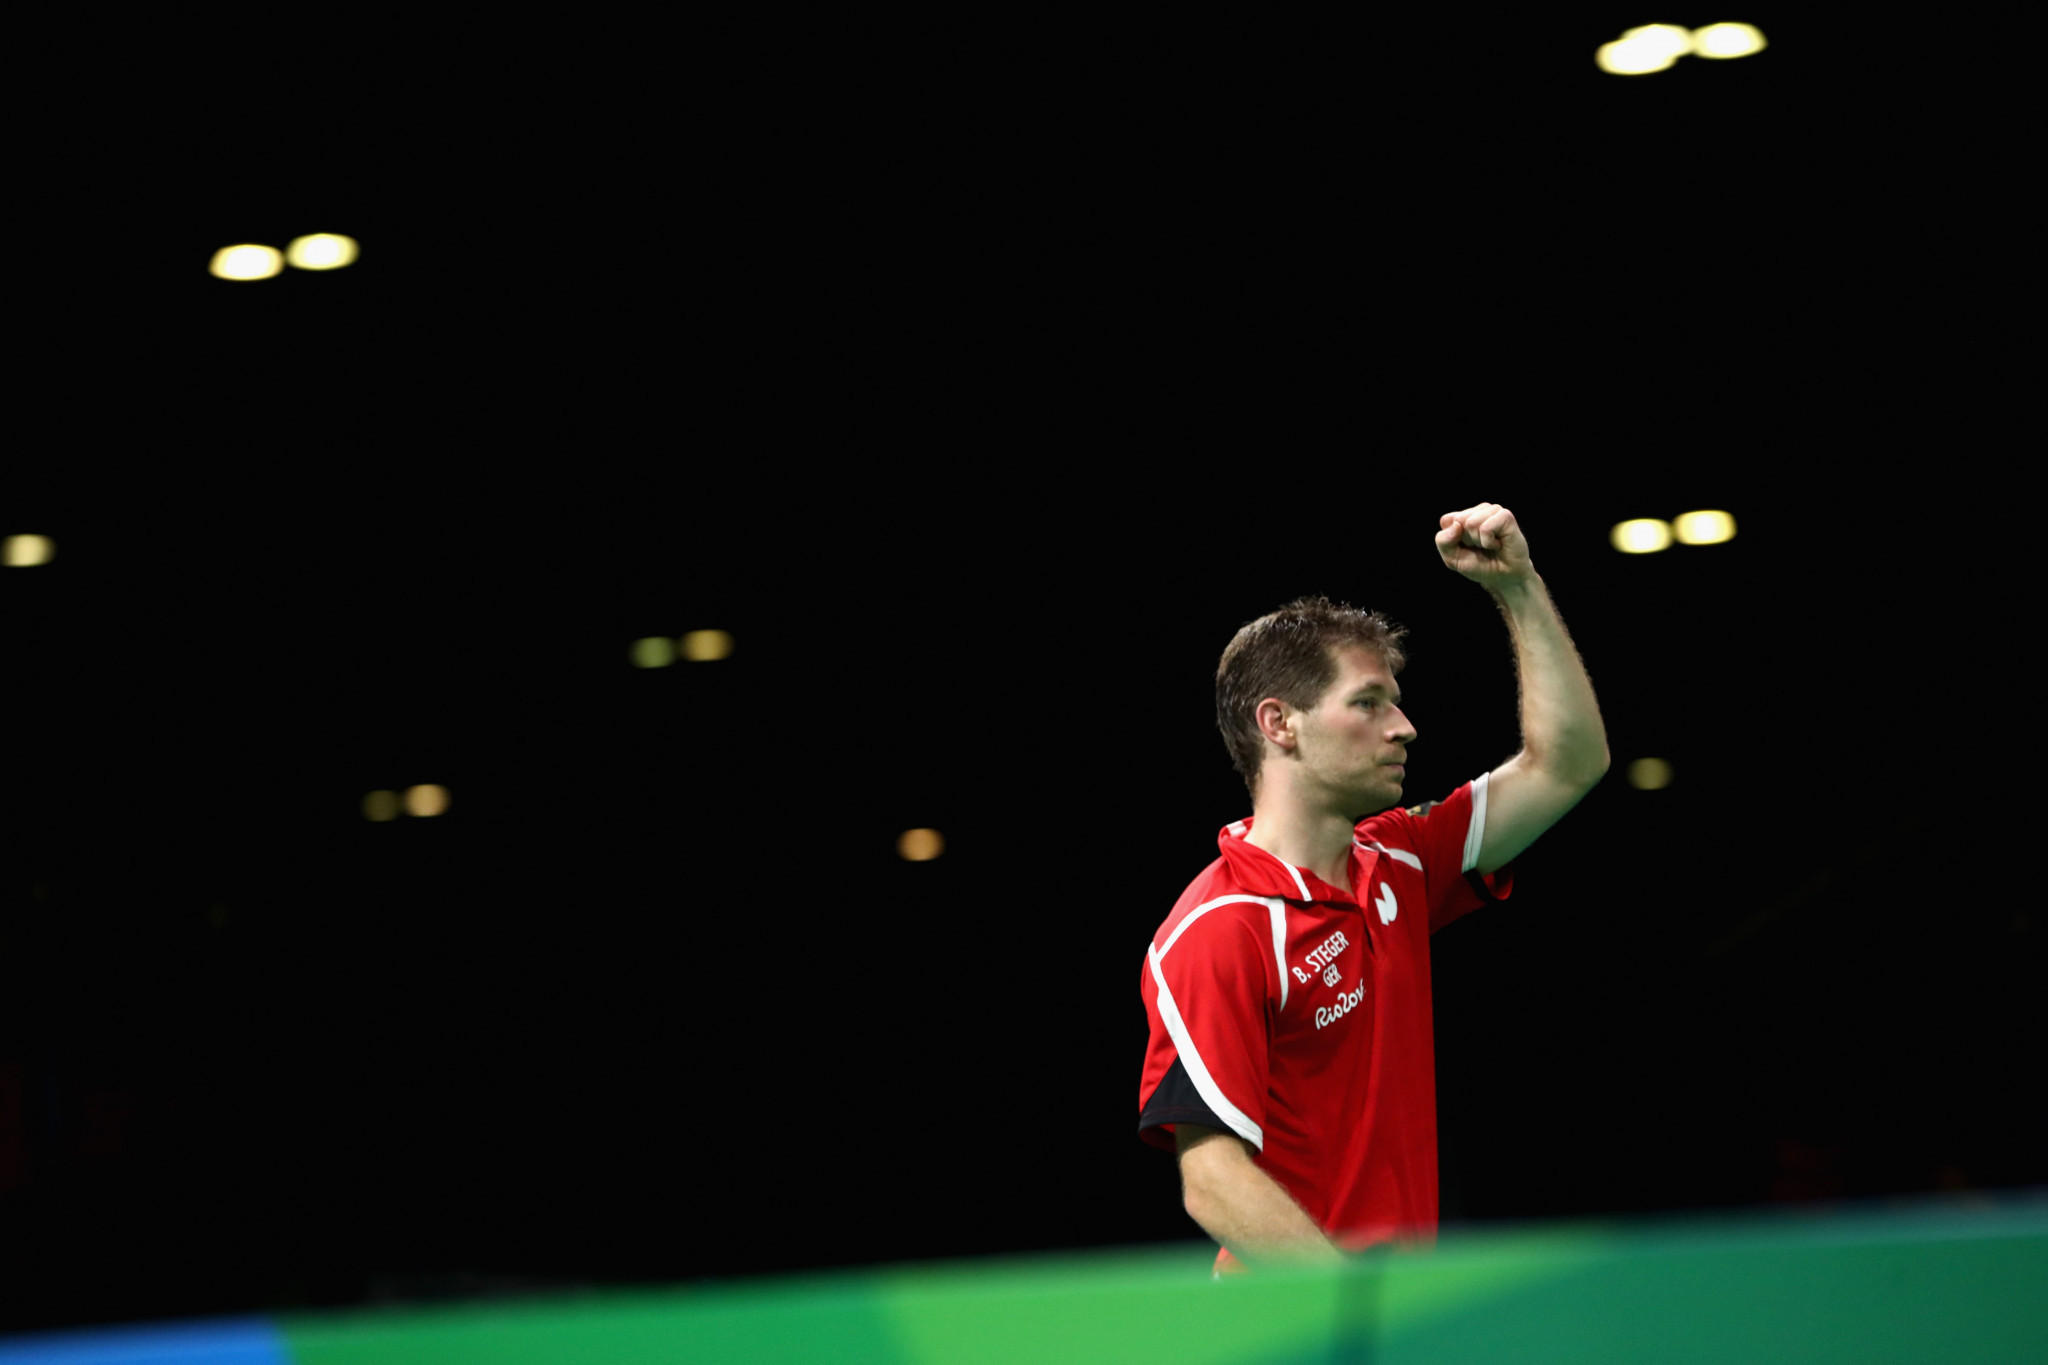 Home trio earn places in men's main draw at ITTF German Open in Magdeburg